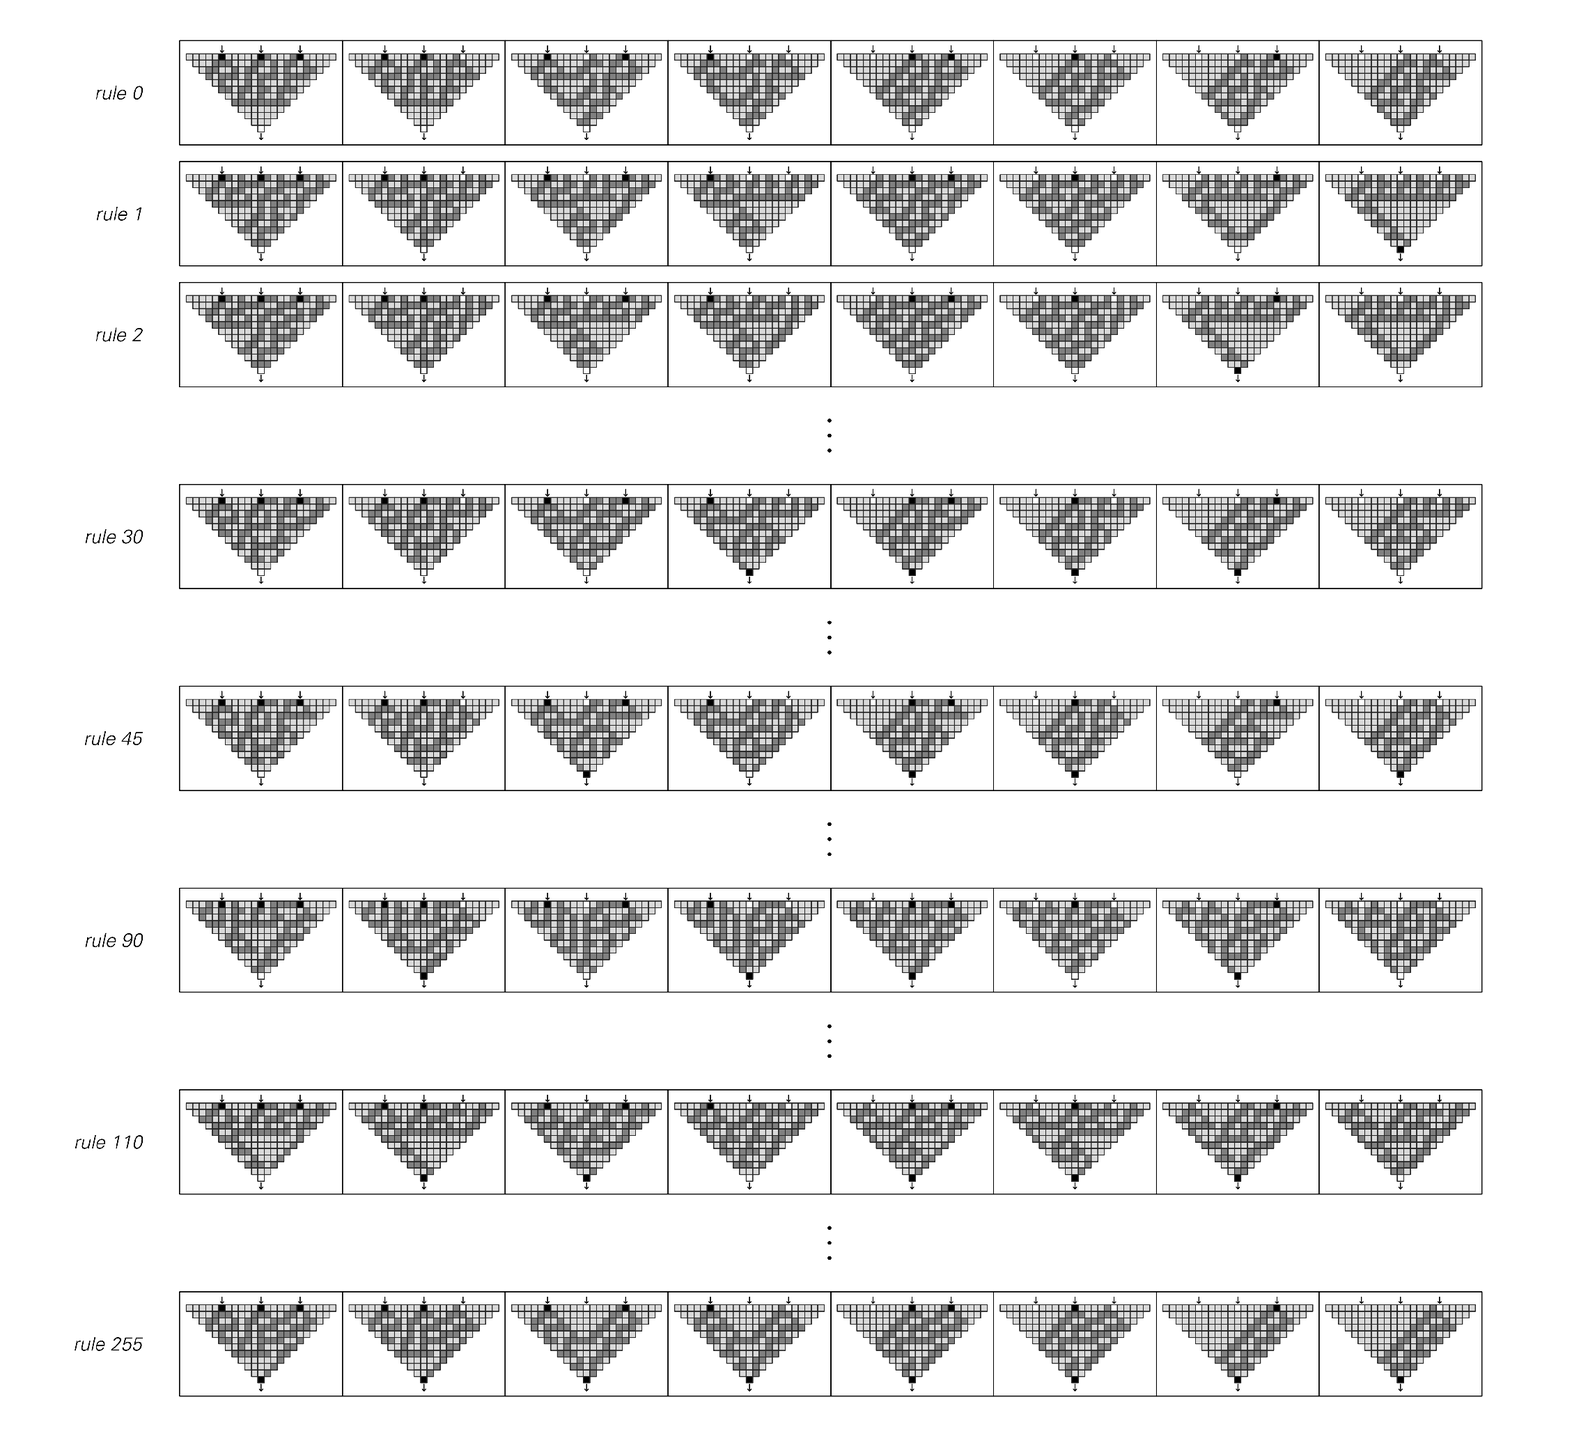 illustrations of how rule 30 can be set up to emulate a single step in the evolution of all elementary cellular automata